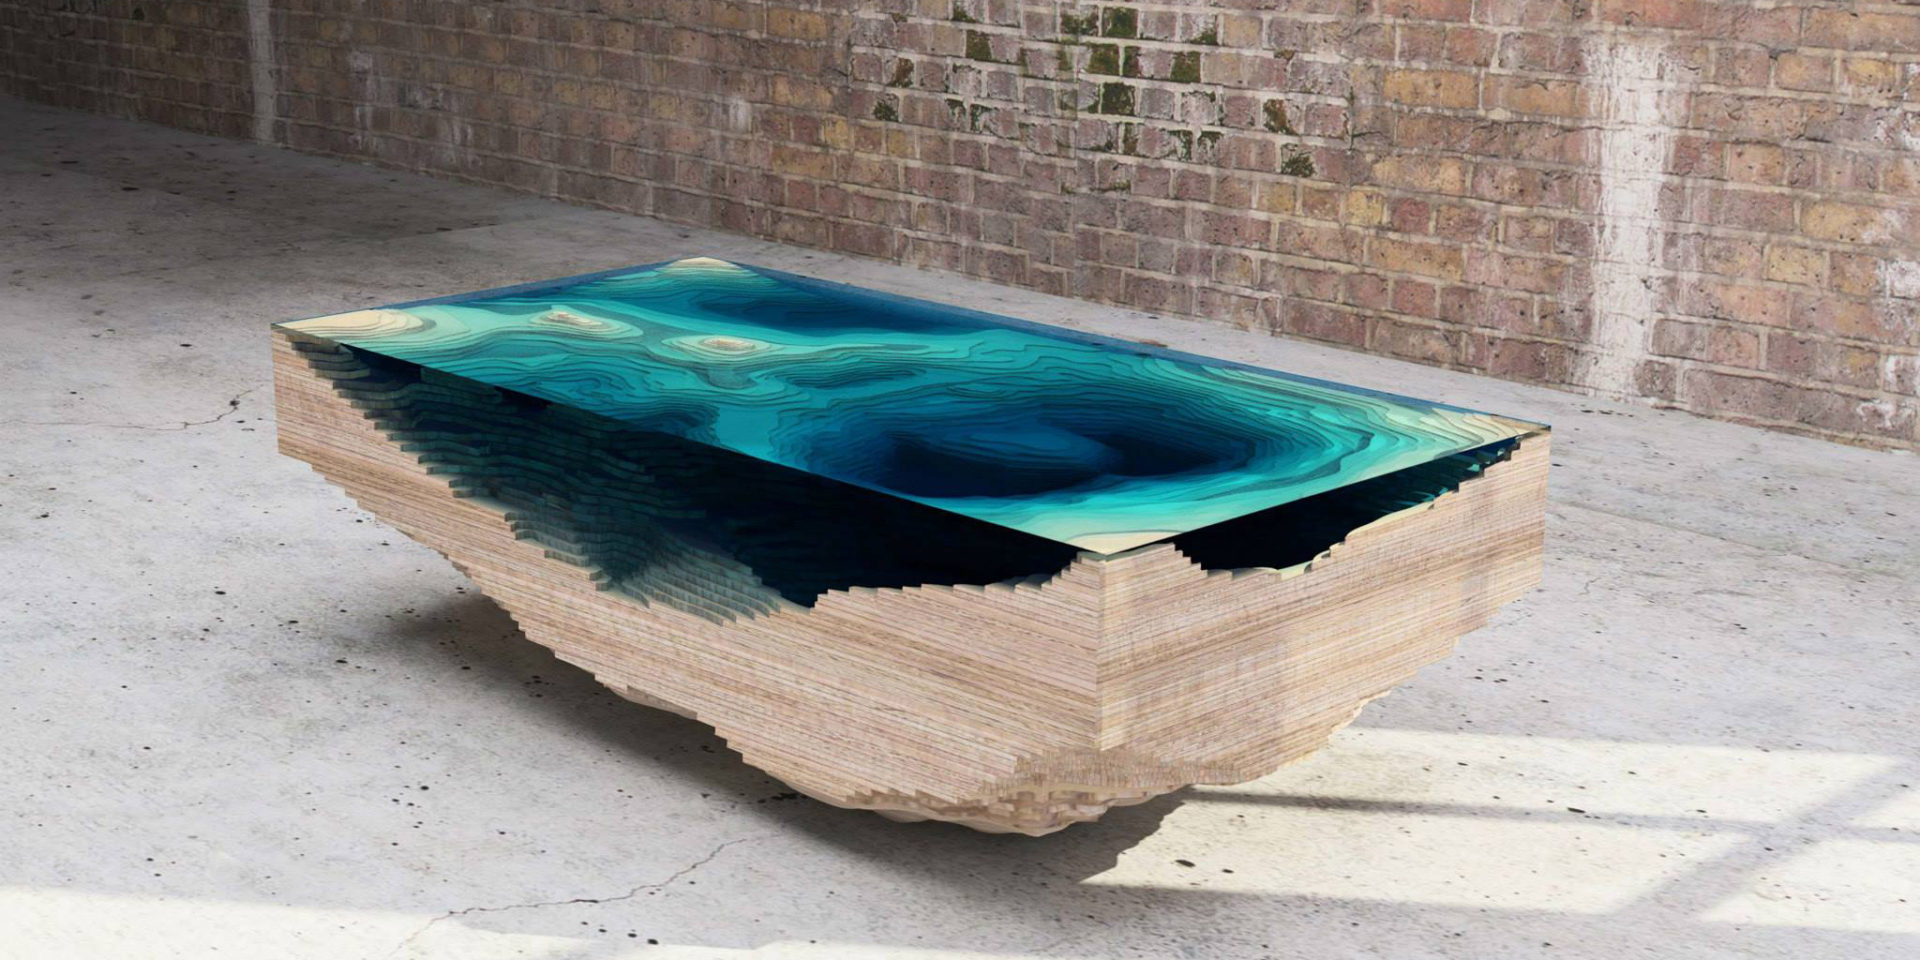 abyss-table-design-layered-glass-christopher-duff-duffy-london-fb